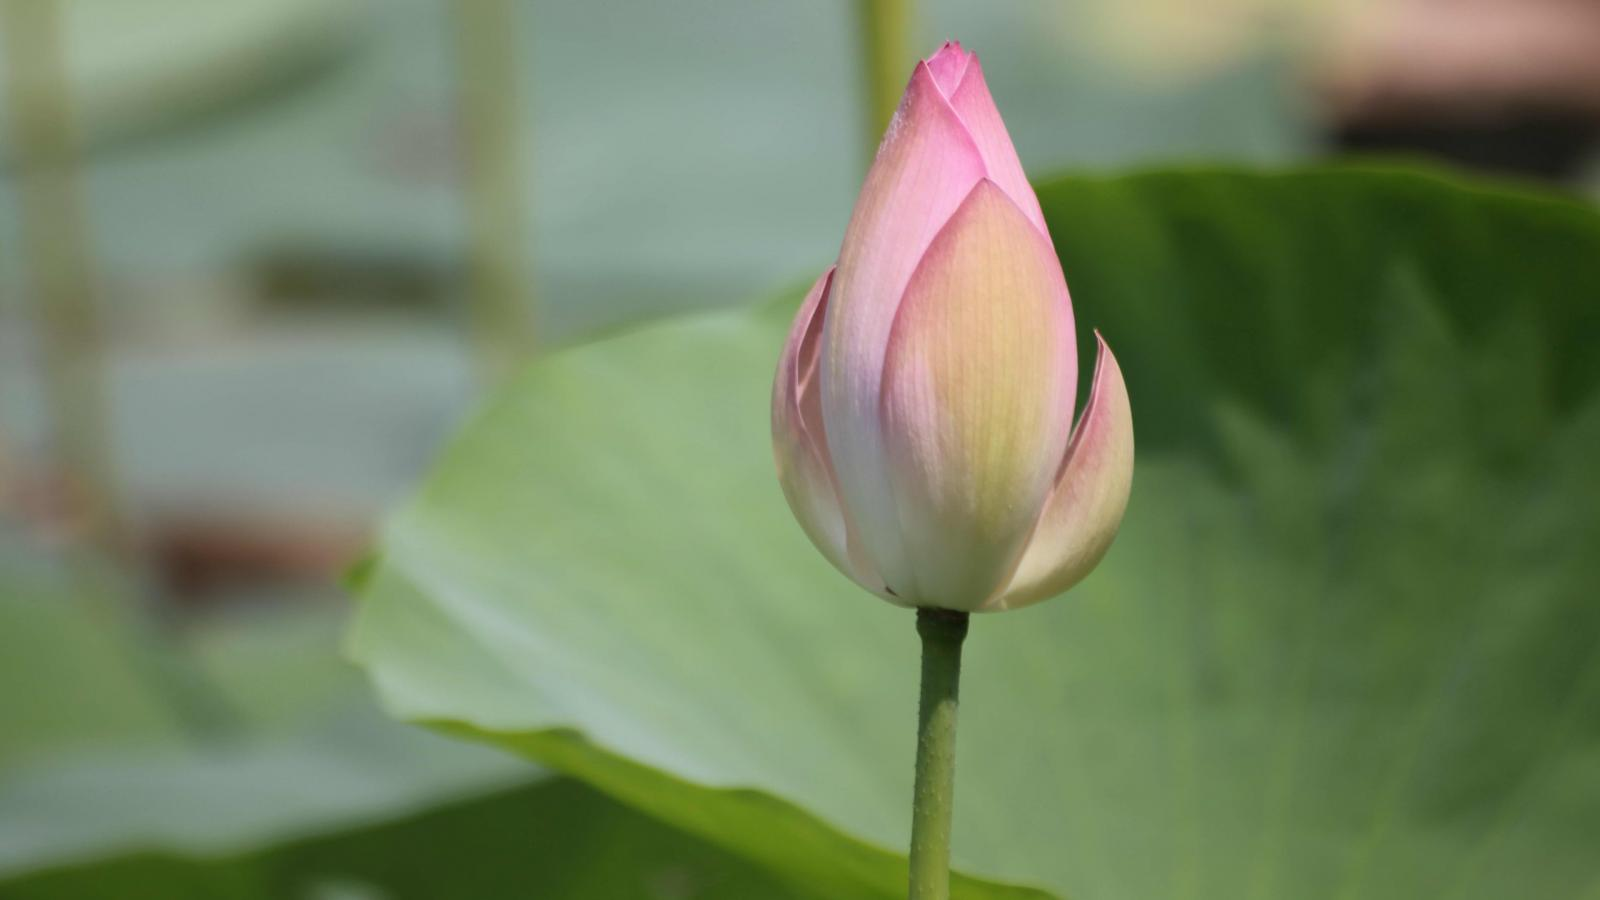 Picture of Ready to Bloom Lotus Flower for Wallpaper - HD